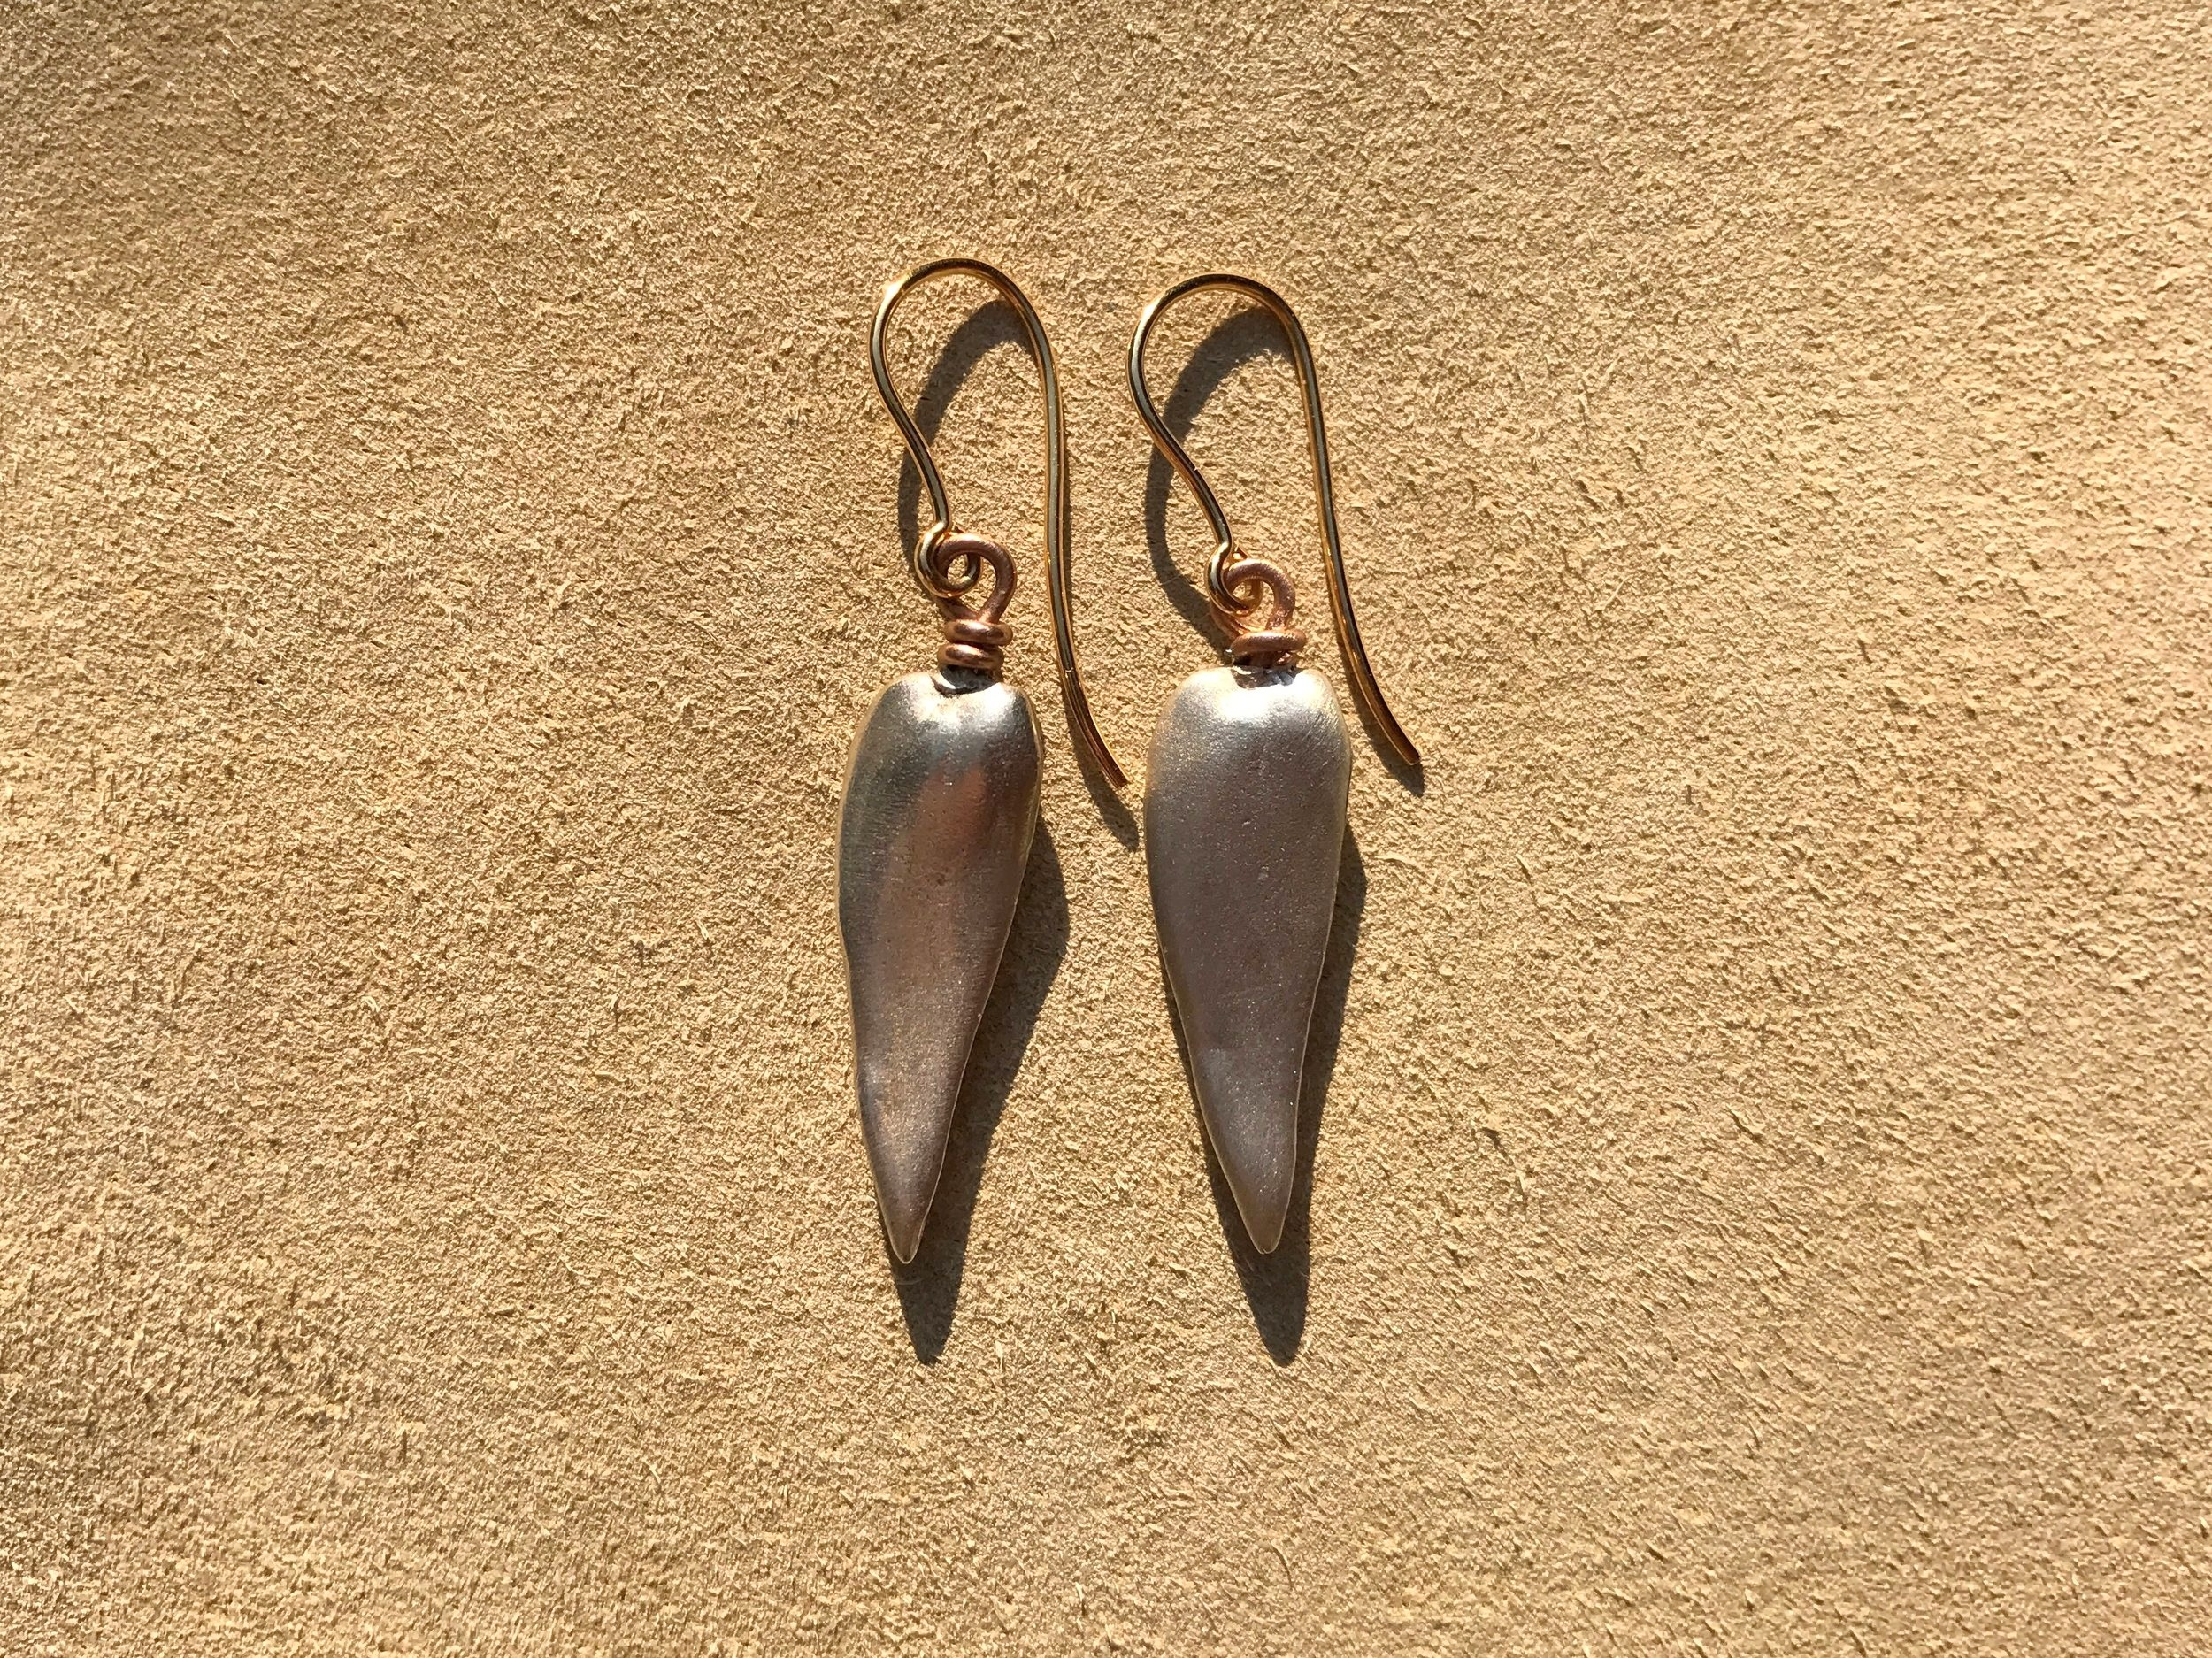 large Mississippi wing drop earrings